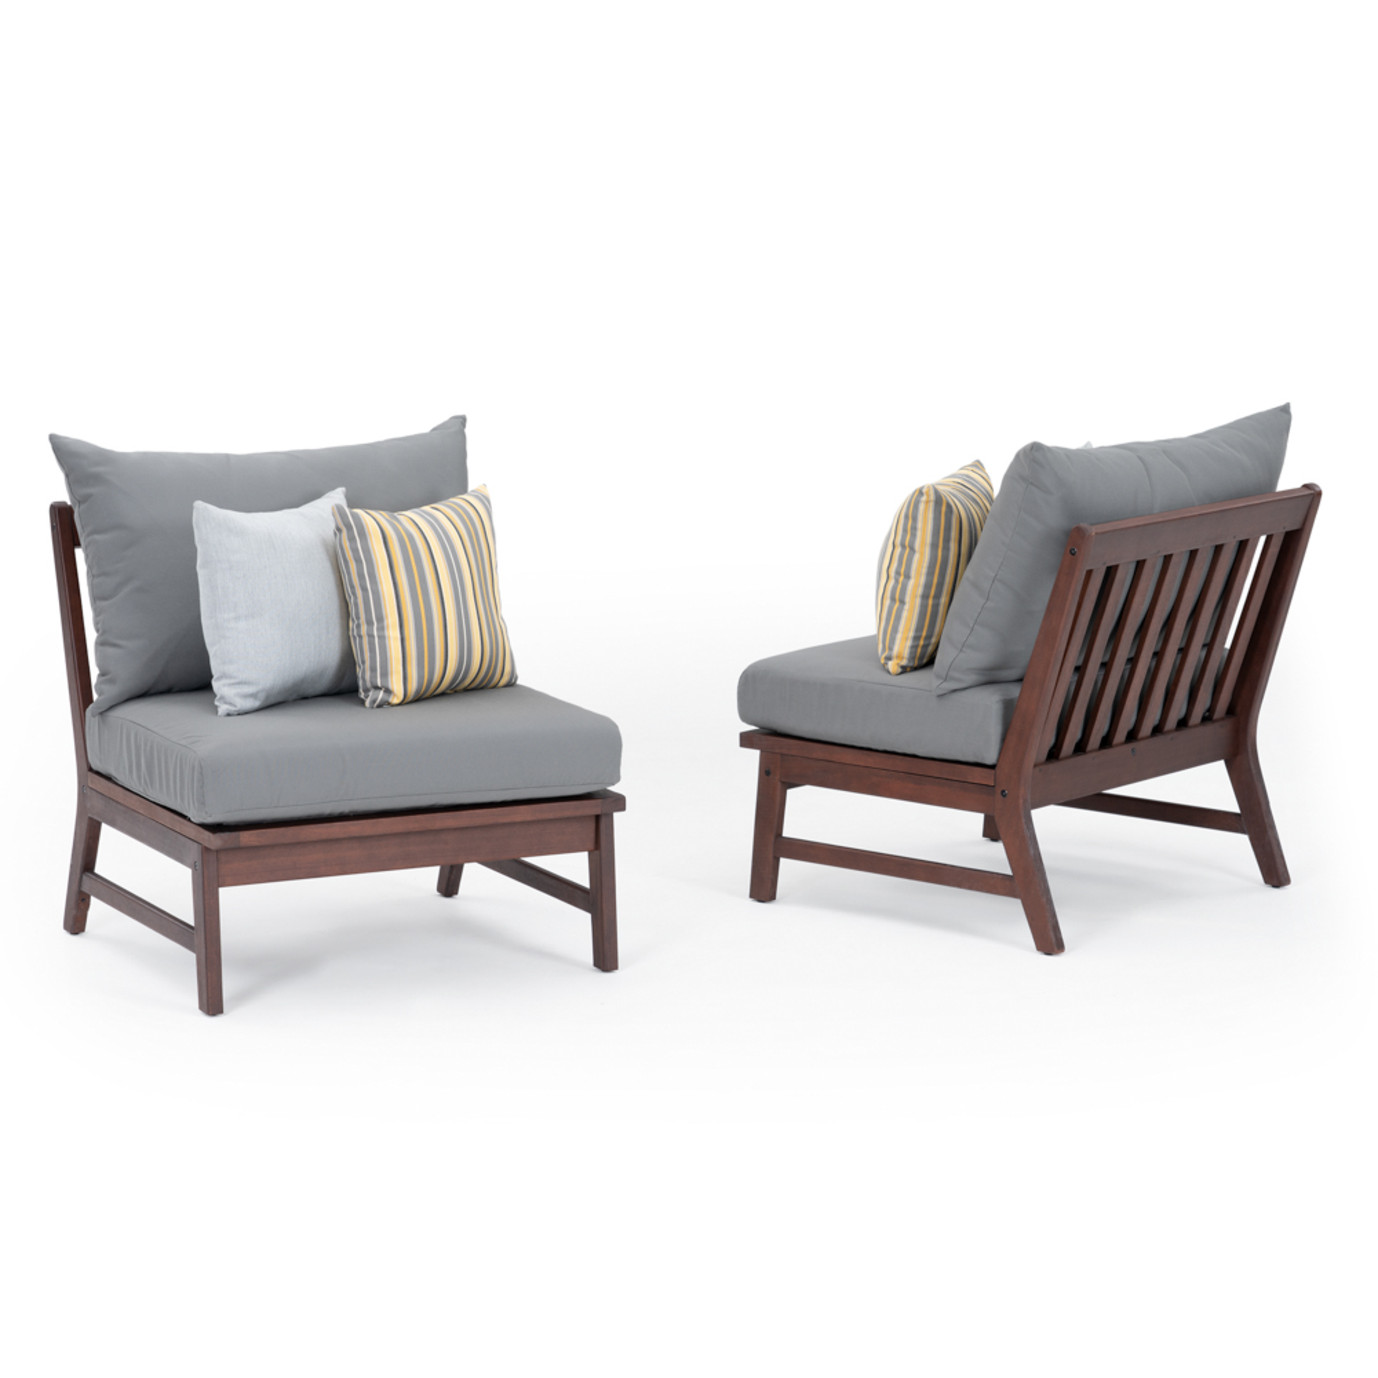 Vaughn Armless Chairs - Charcoal Gray